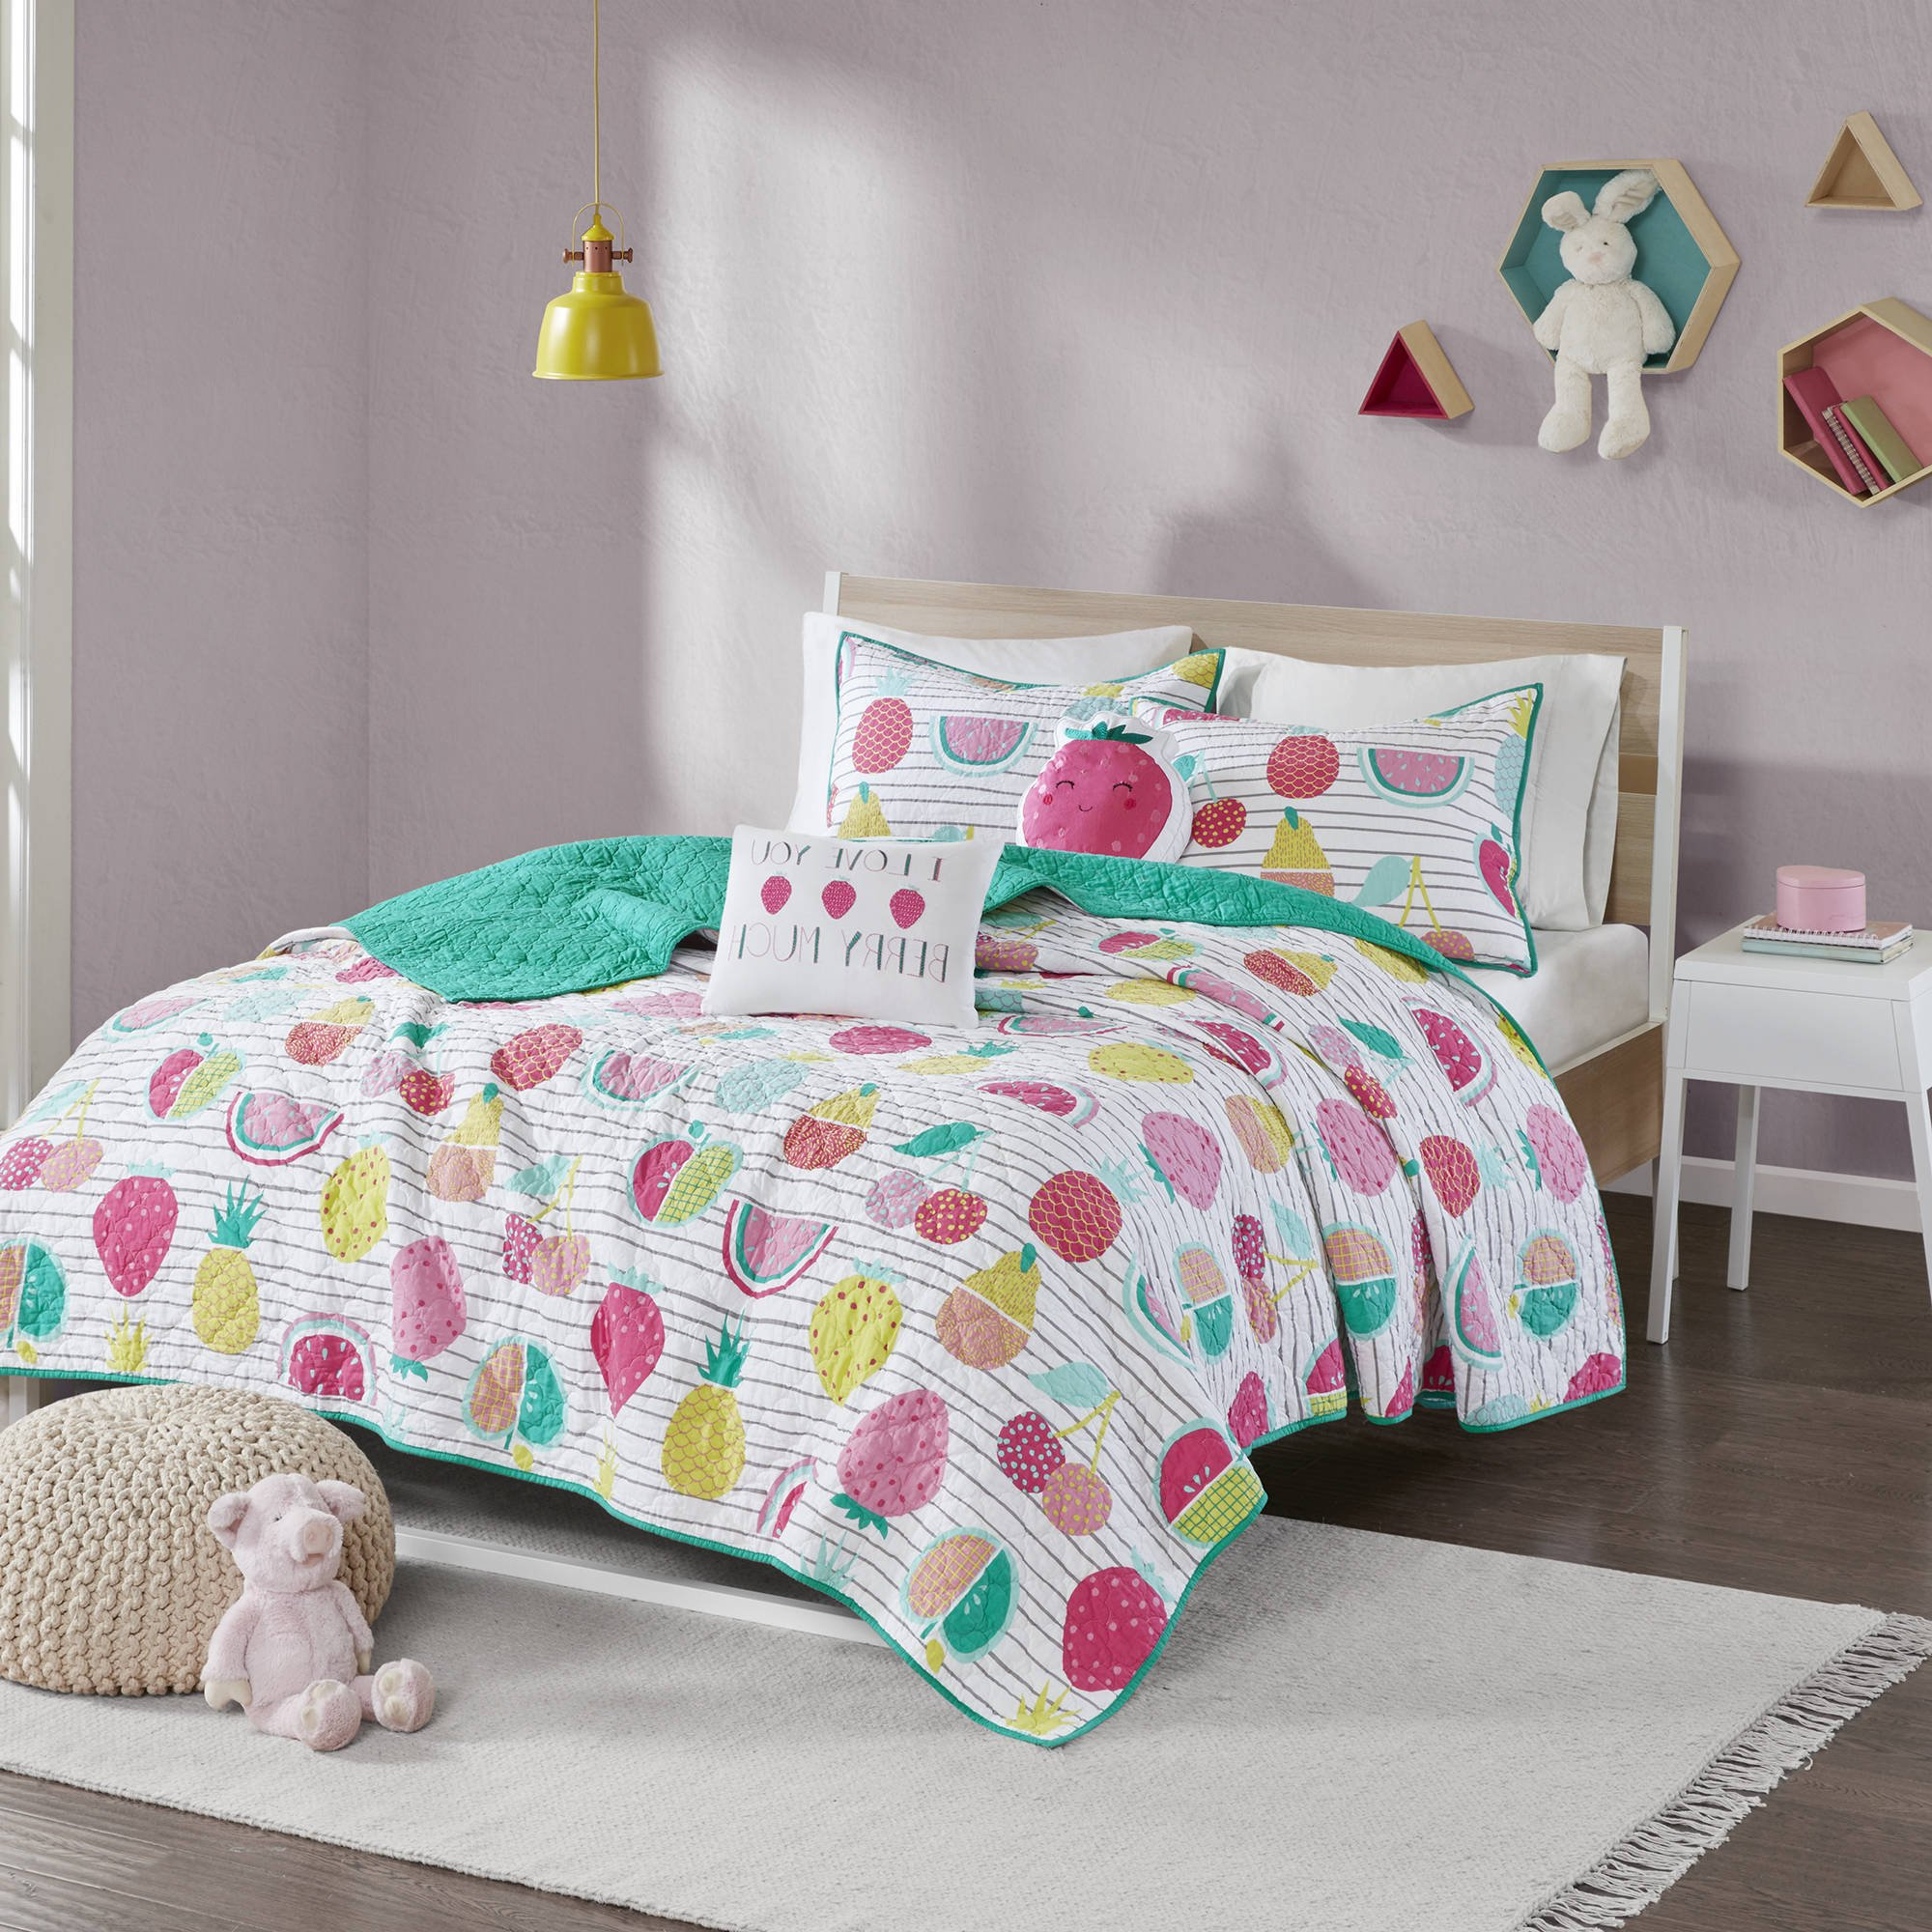 4 Piece Kids Pink Yellow Teal Fresh Fruit Themed Coverlet Twin XL Set, Cute Girls Multi Color Fruits Bedding, Vibrant Bright Pineapple Watermelon Strawberry Berry Theme Pattern, Cotton